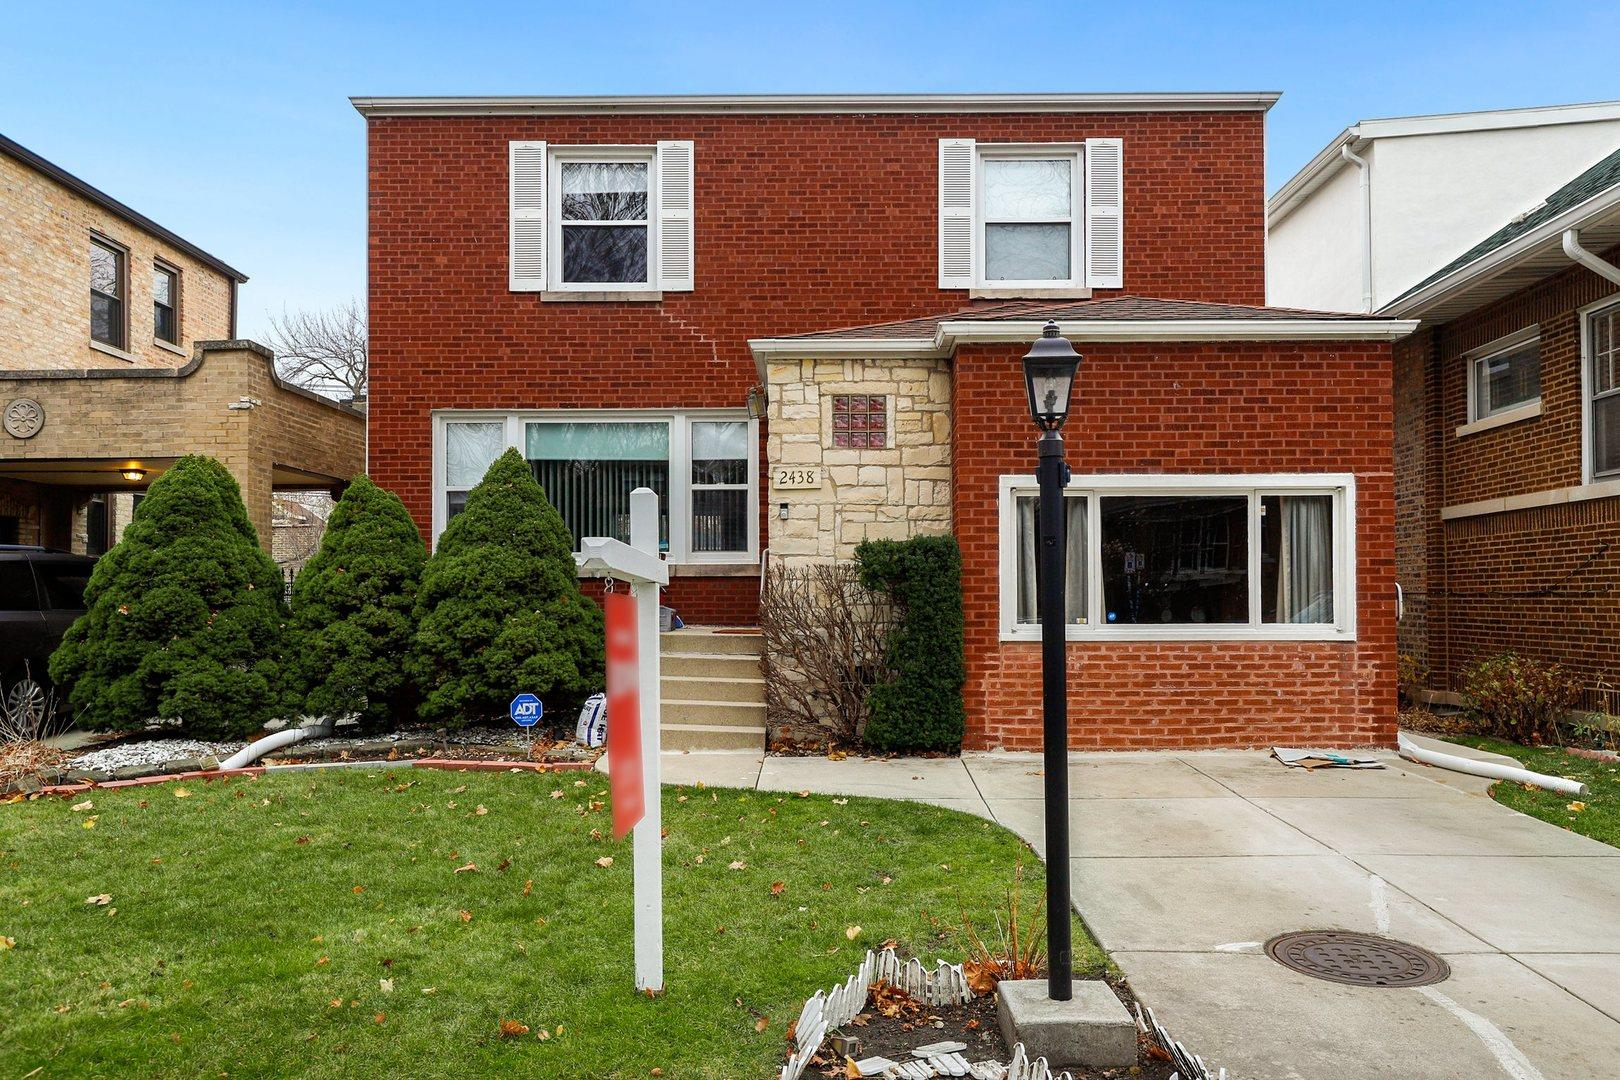 2438 W Morse Avenue, Chicago, IL 60645 - #: 10937080